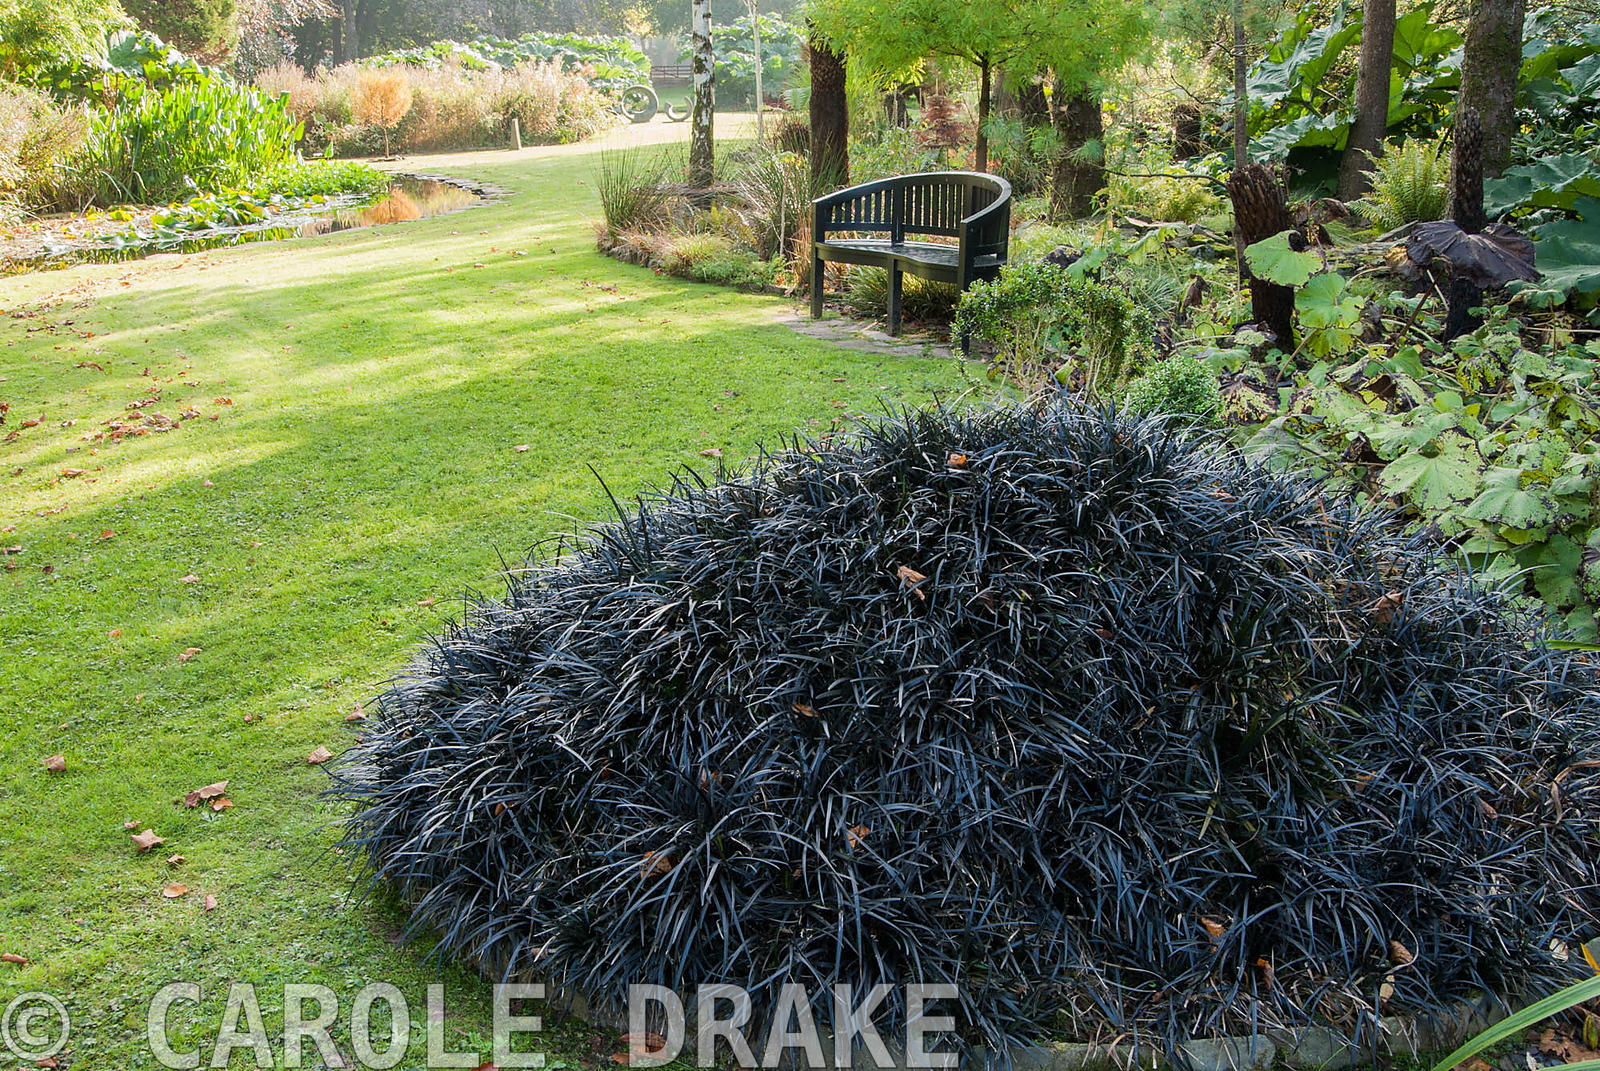 Mound covered with black Ophiopogon planiscapens 'Nigrescens' with mossy lawn, pond and orange yellow Metasequoia glyptostrob...